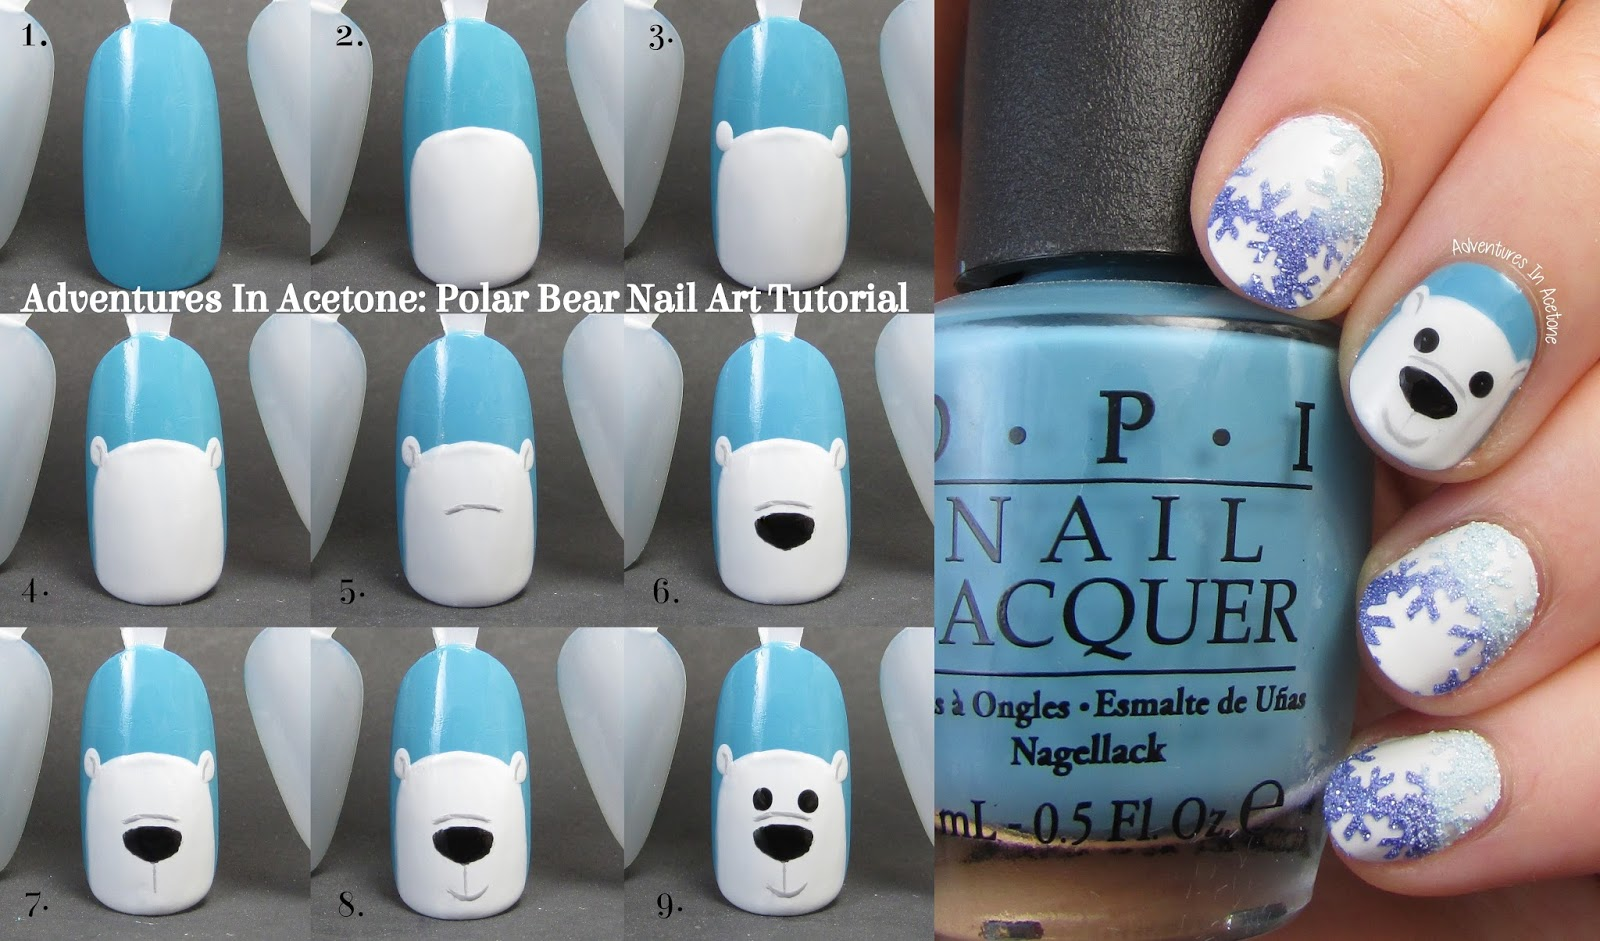 Tutorial Tuesday: Polar Bear Nail Art! - Adventures In Acetone